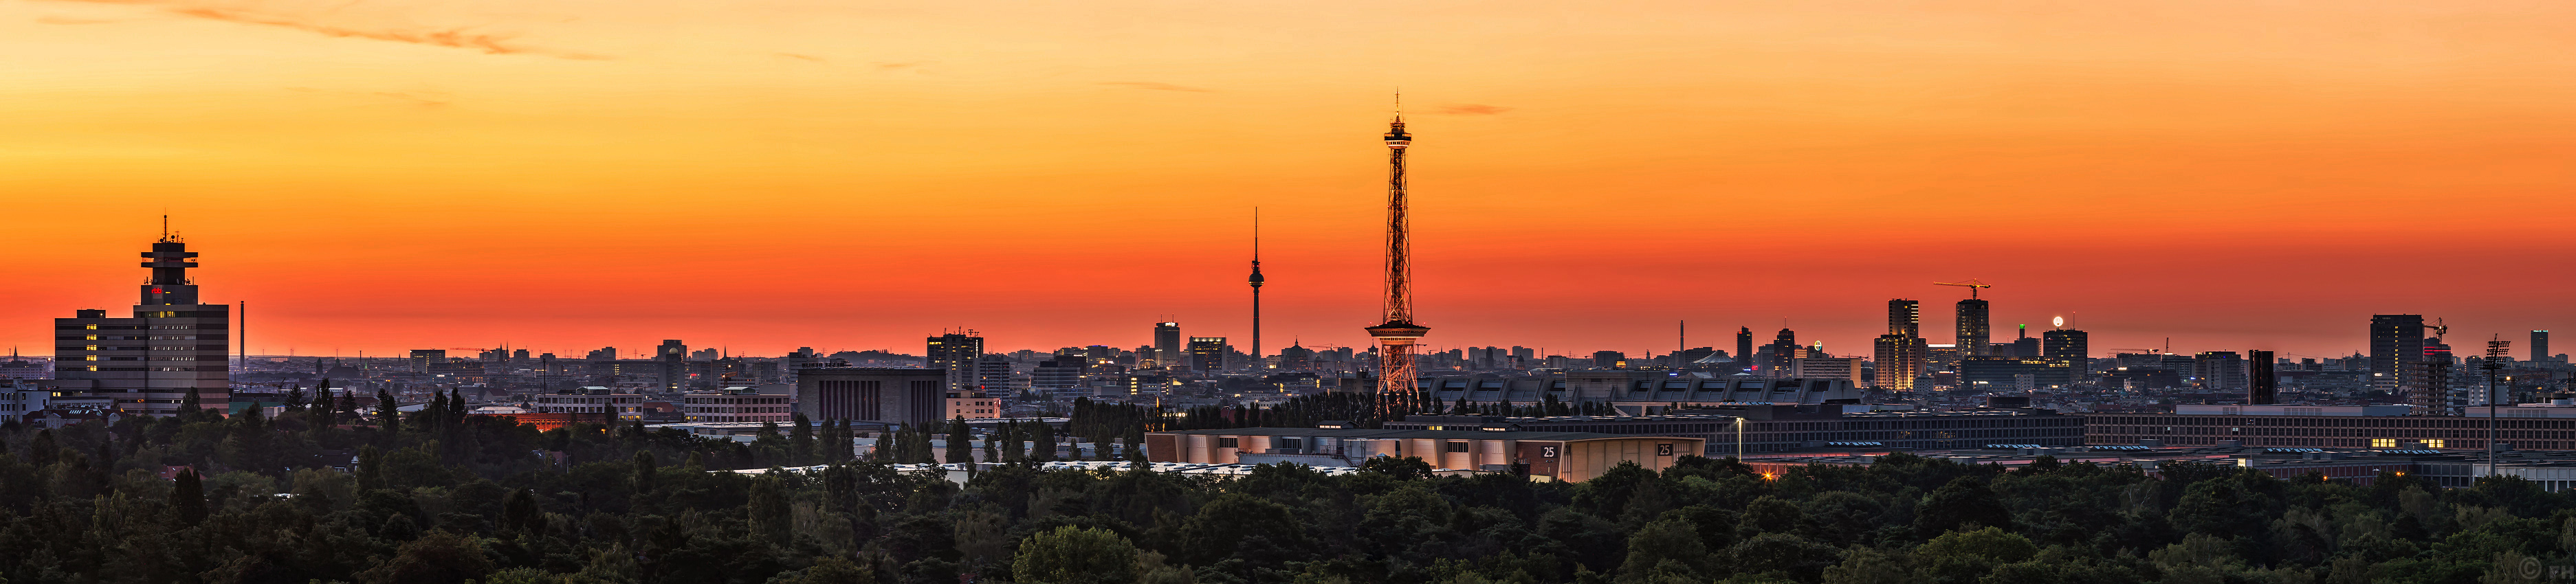 Berlin_sunrise_Pano_k